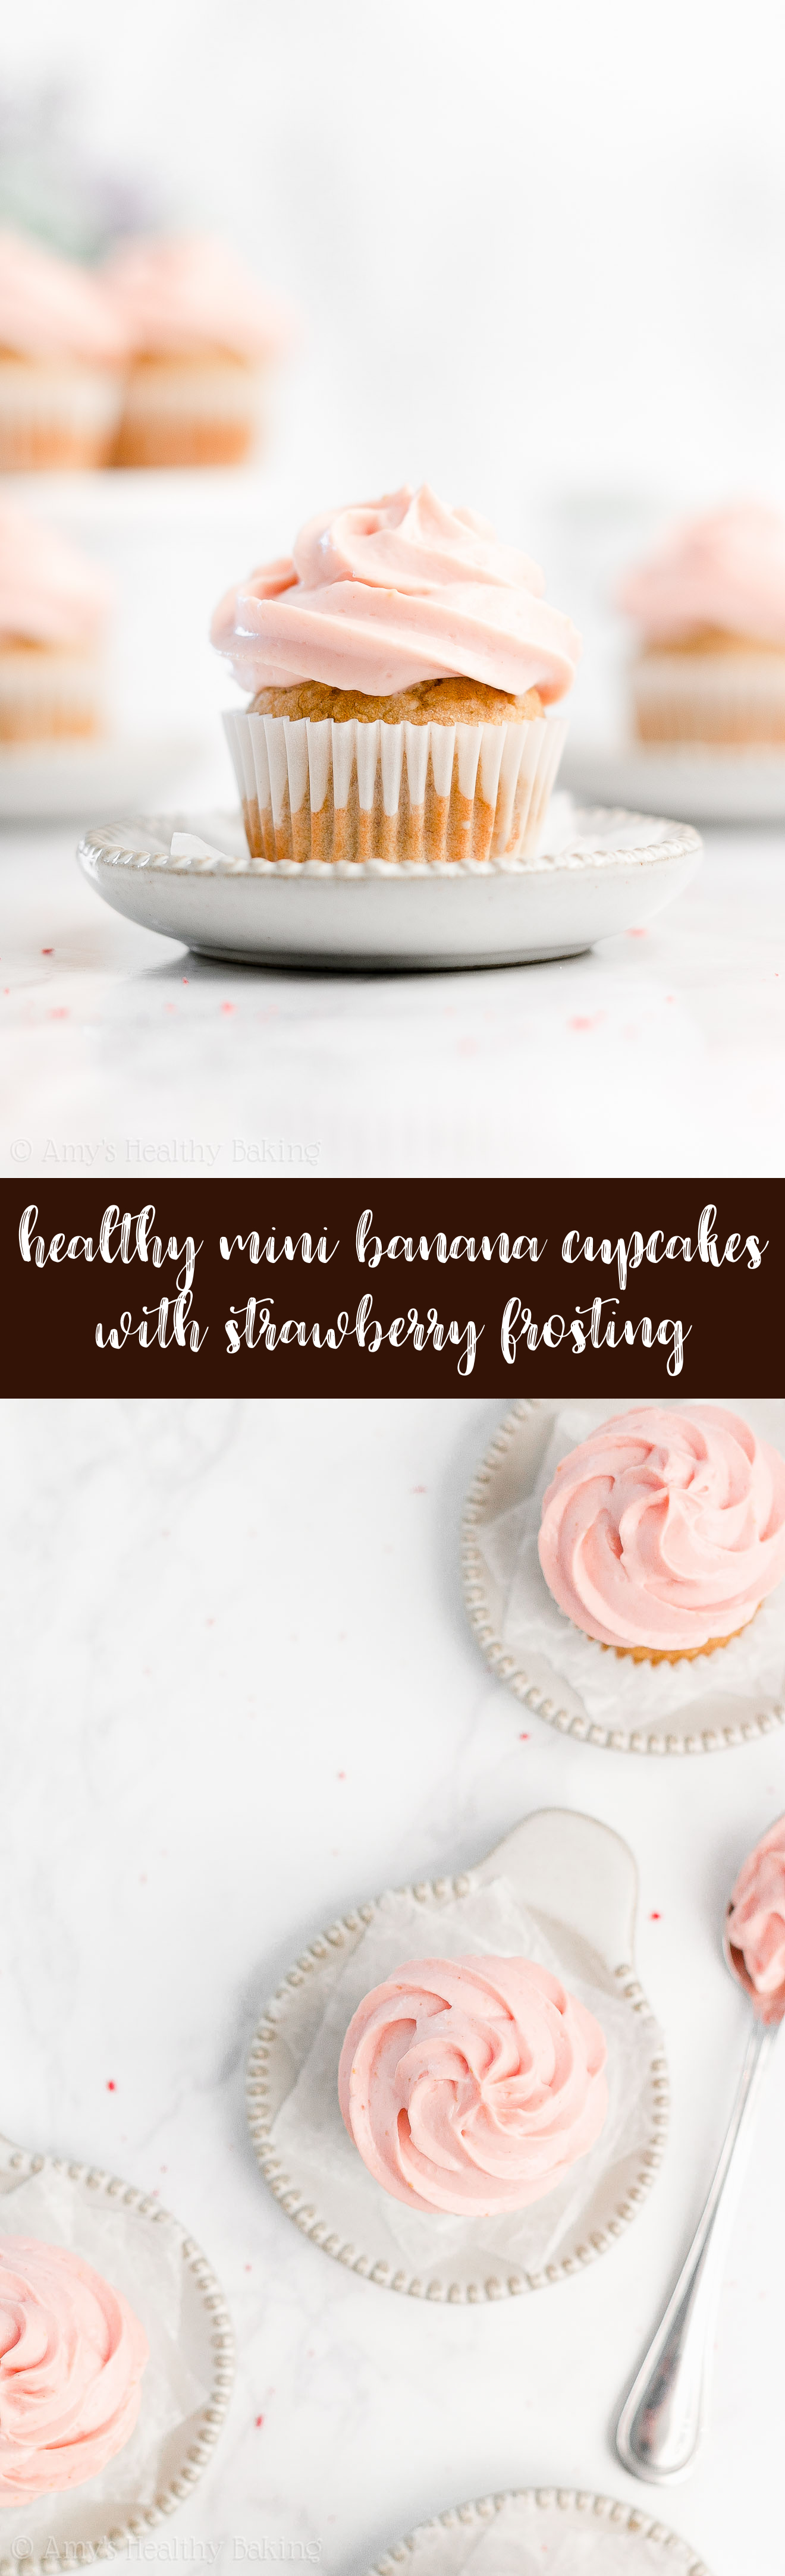 Best Easy Healthy Low Calorie No Sugar Small Batch Mini Banana Cupcakes + Greek Yogurt Strawberry Frosting